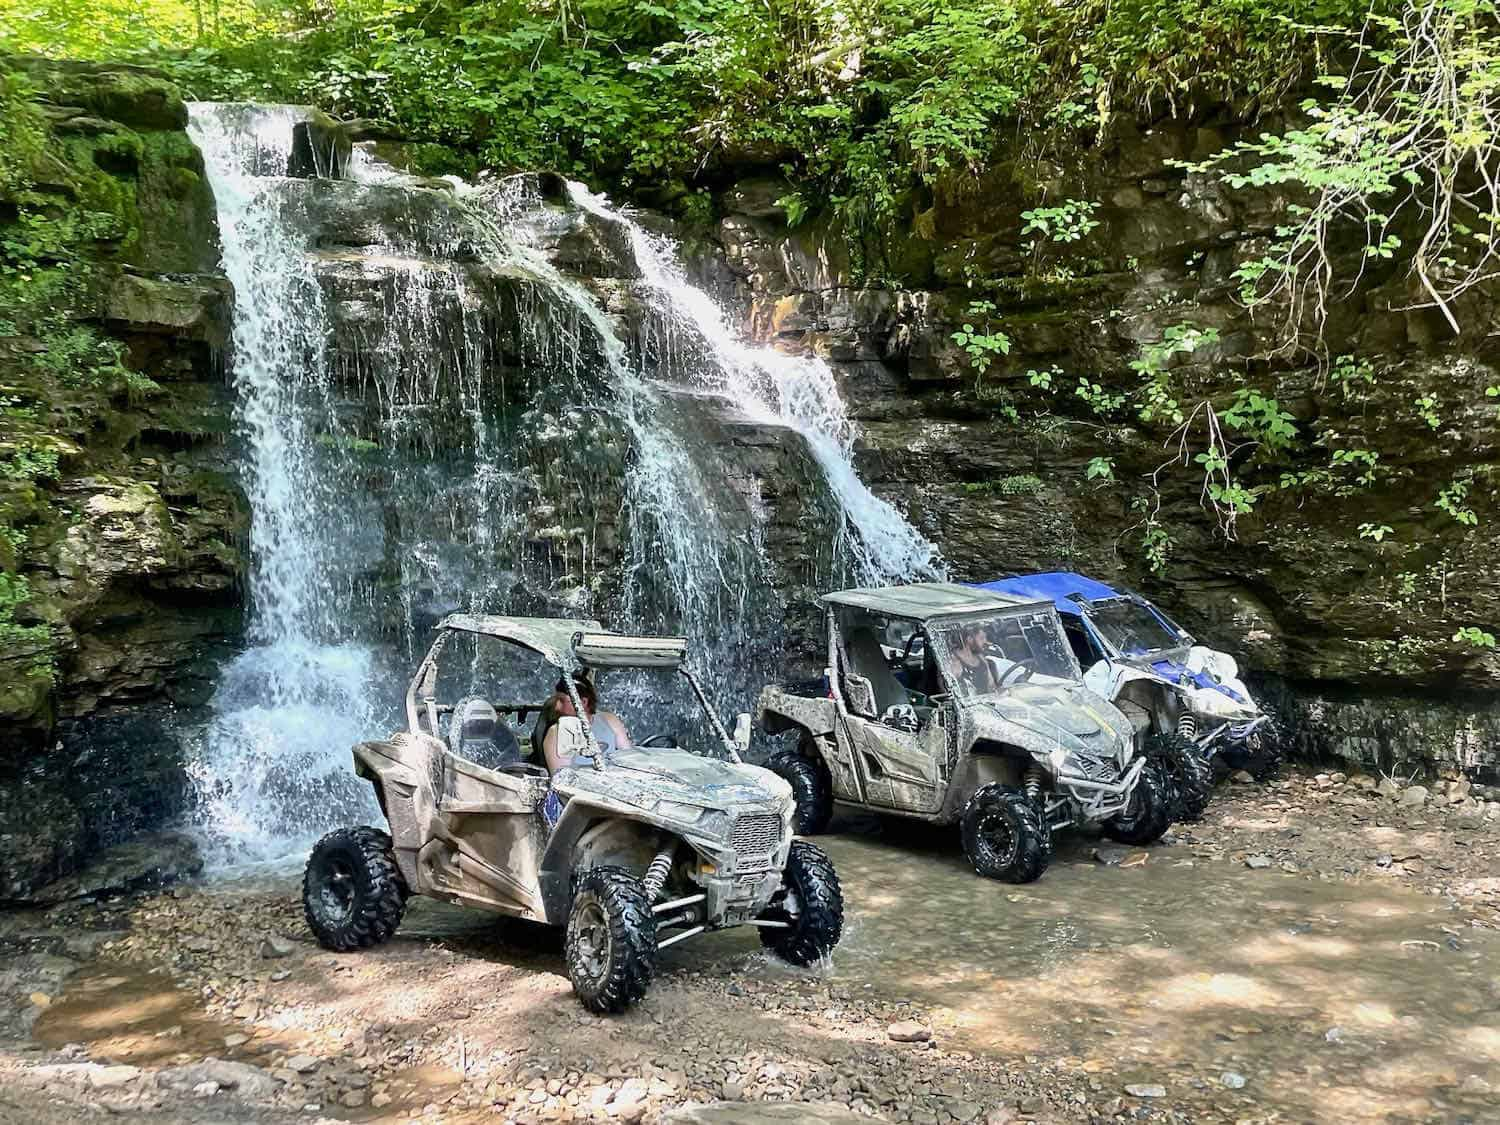 Riding the Hatfield McCoy Trails for Beginners